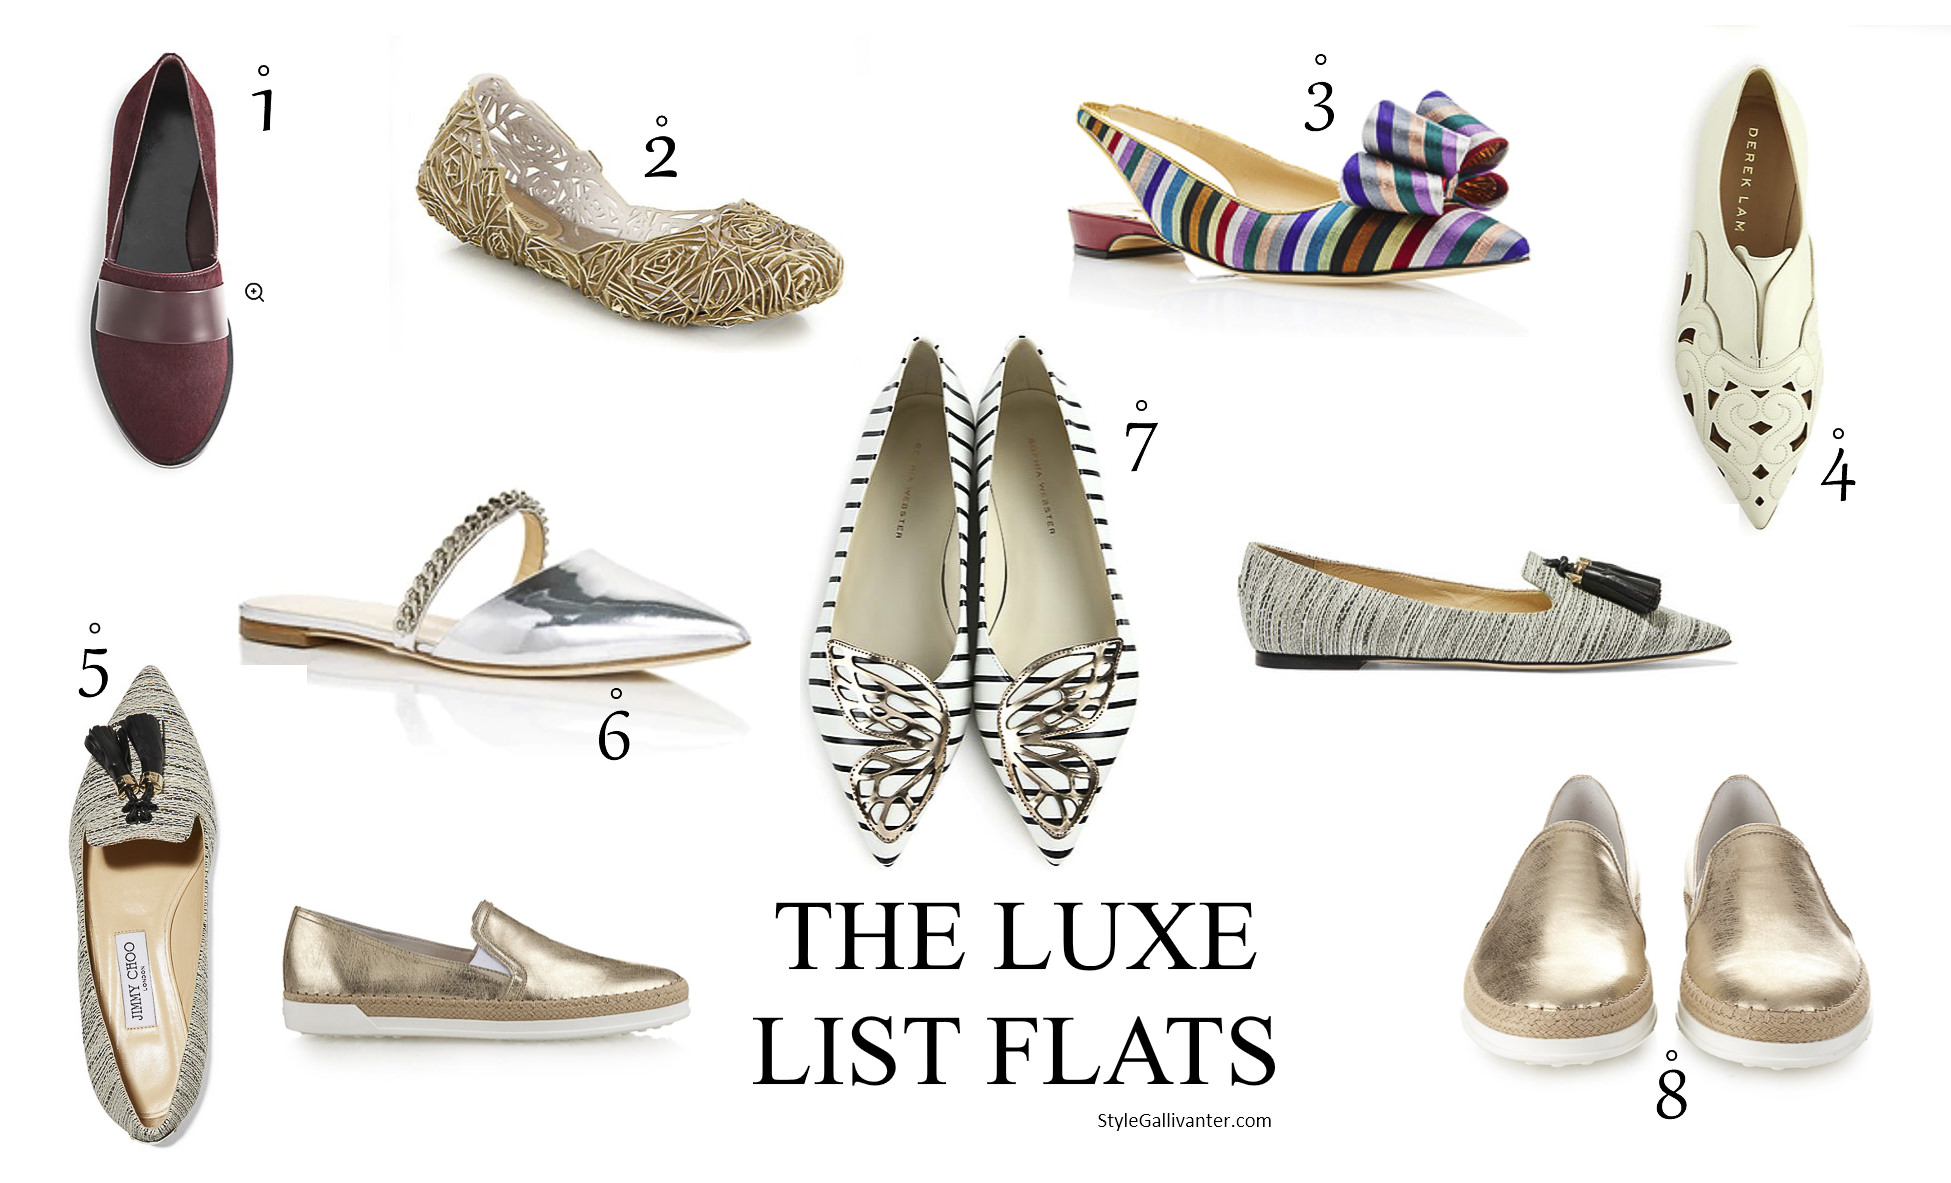 the-luxe-list-shoes_flats-trends-2016_chanel-2016_top-luxury-blogs-australia-2016_top-london-fashion-bloggers-2016